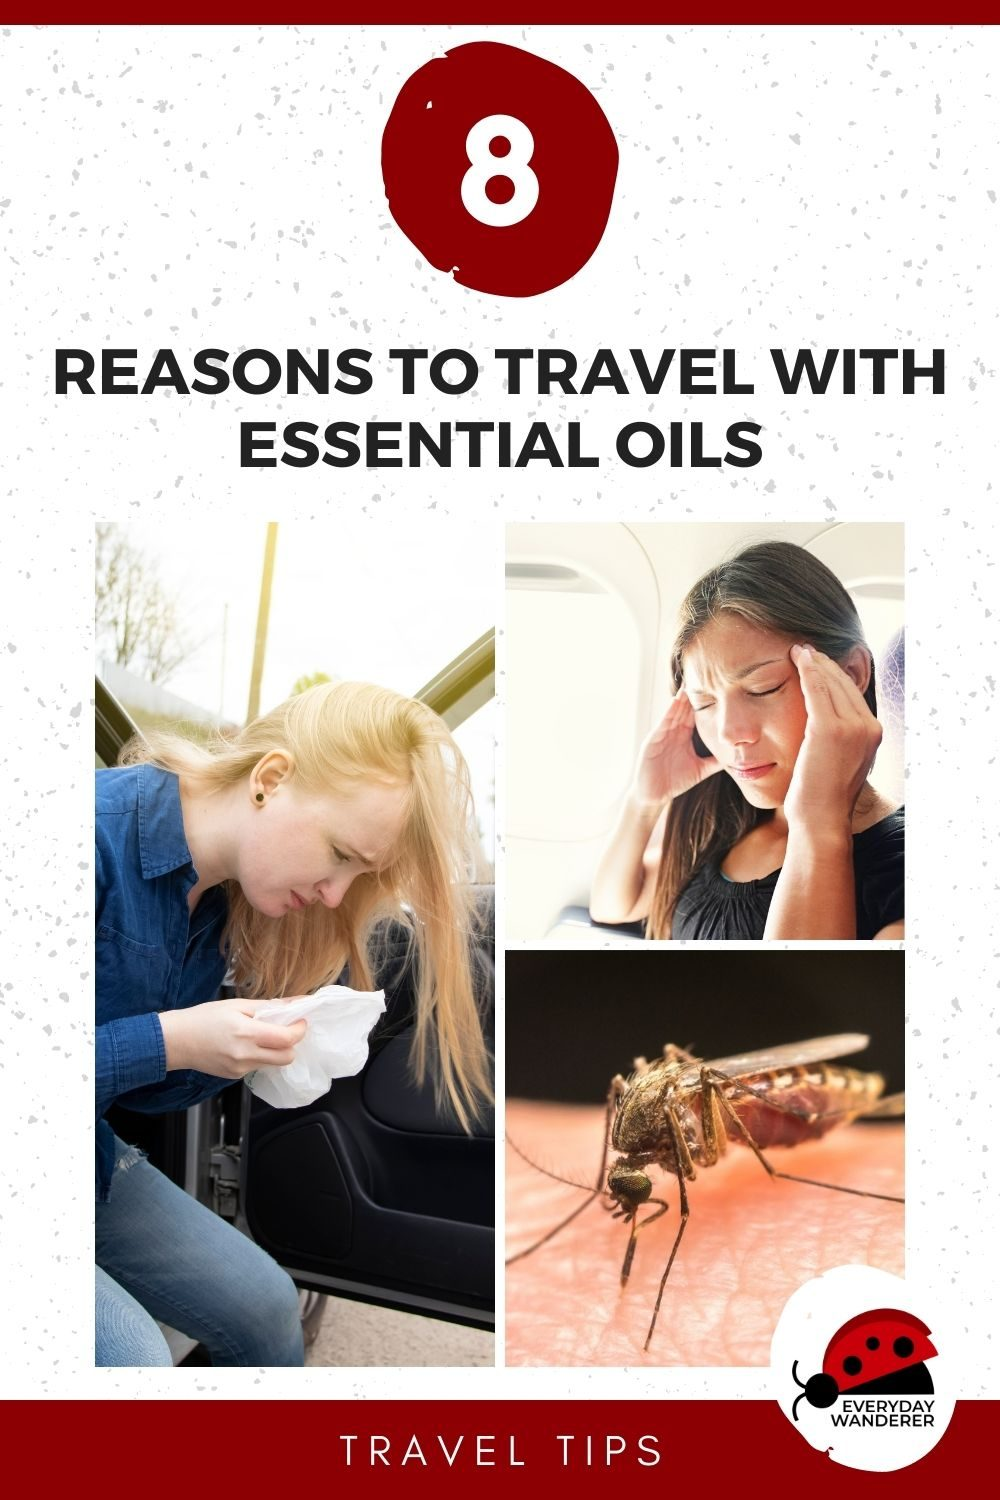 Travel with Essential Oils - Pin 6 - JPG